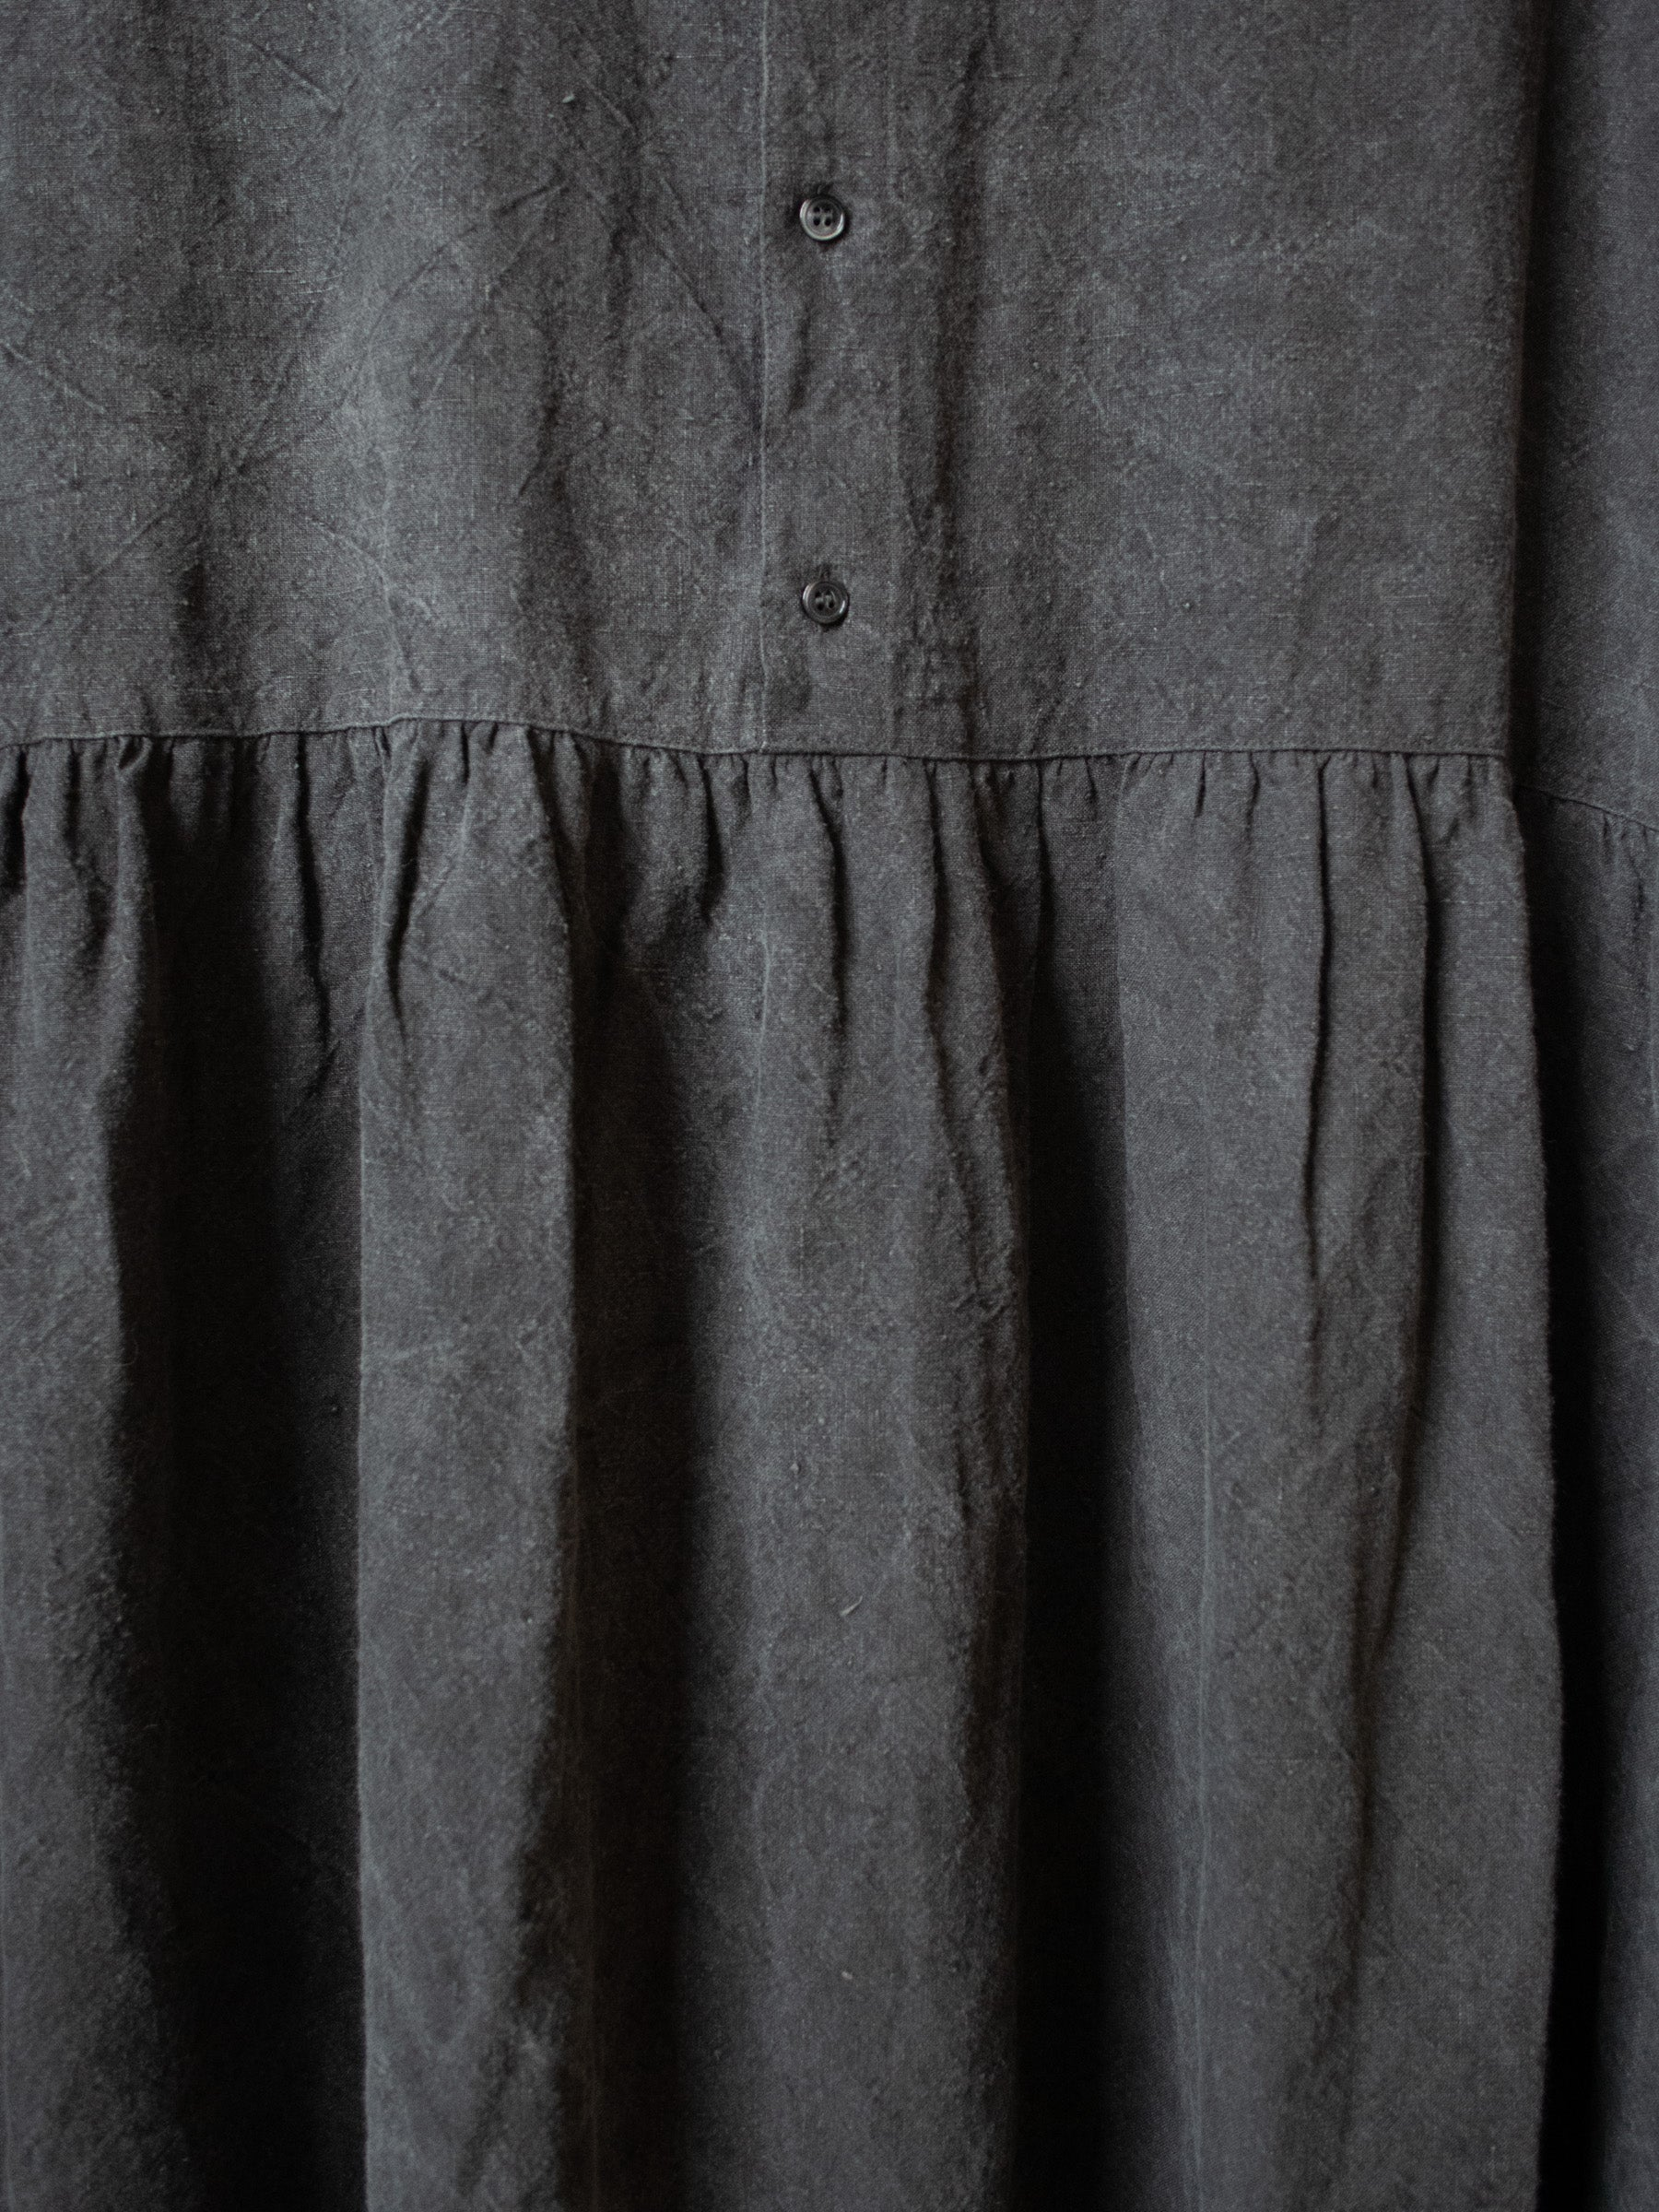 Natural Dyed 2 Way Cotton/Washi Dress - Sumi Dark